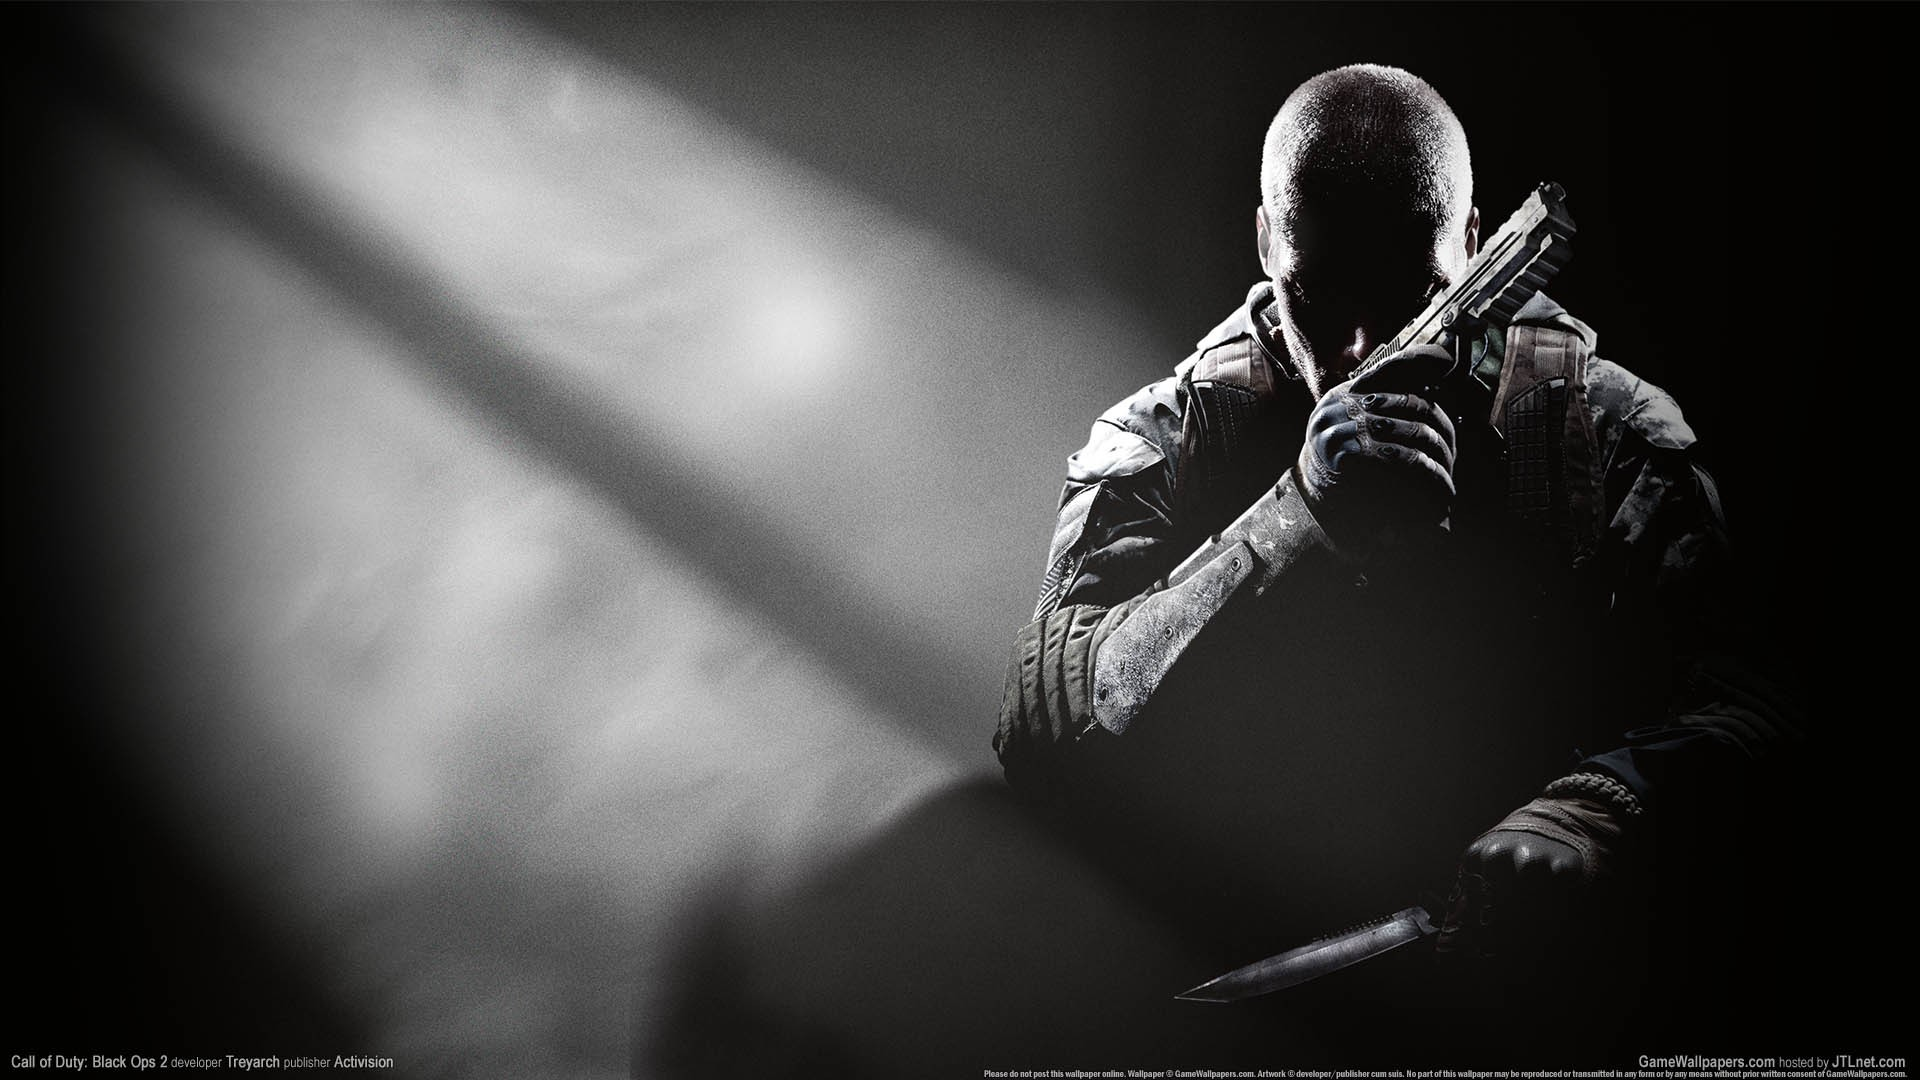 Black Ops 2 Wallpaper Download Free Hd Wallpapers For Desktop